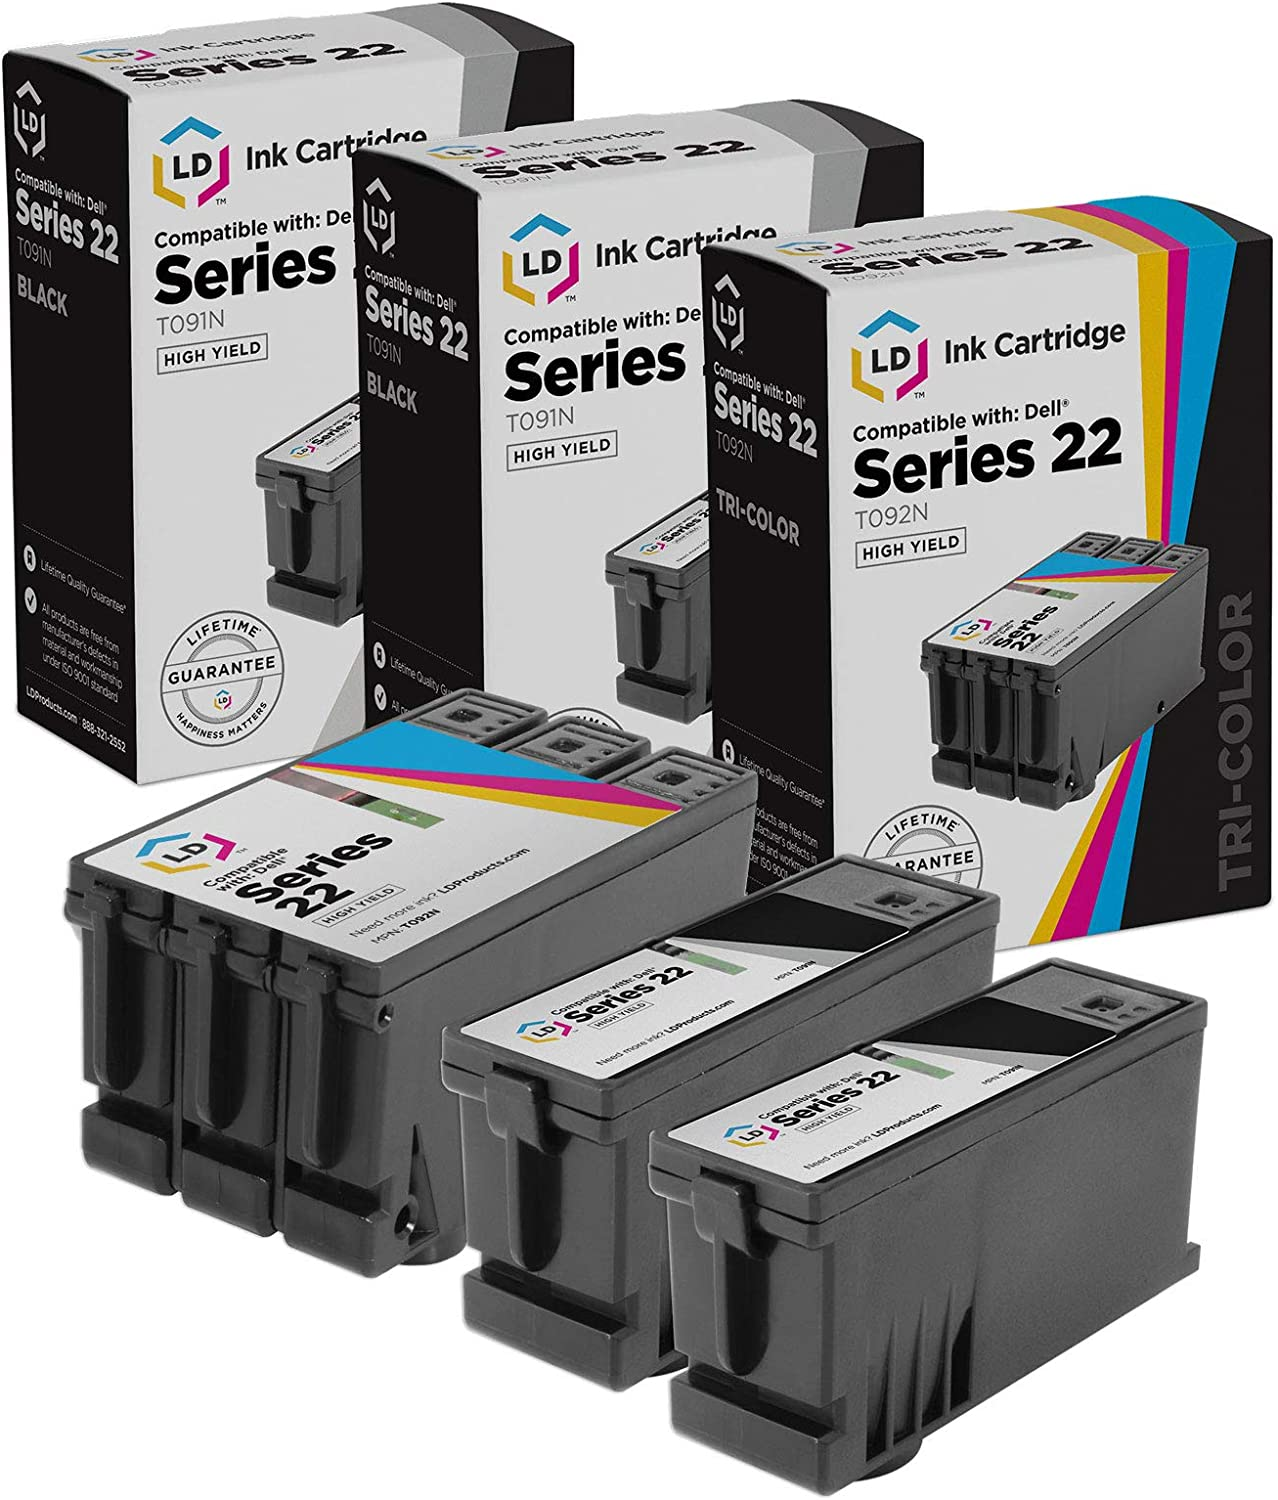 LD Compatible Ink Cartridge Replacement for Dell T091N & T092N Series 22 High Yield (2 Black, 1 Color, 3-Pack)